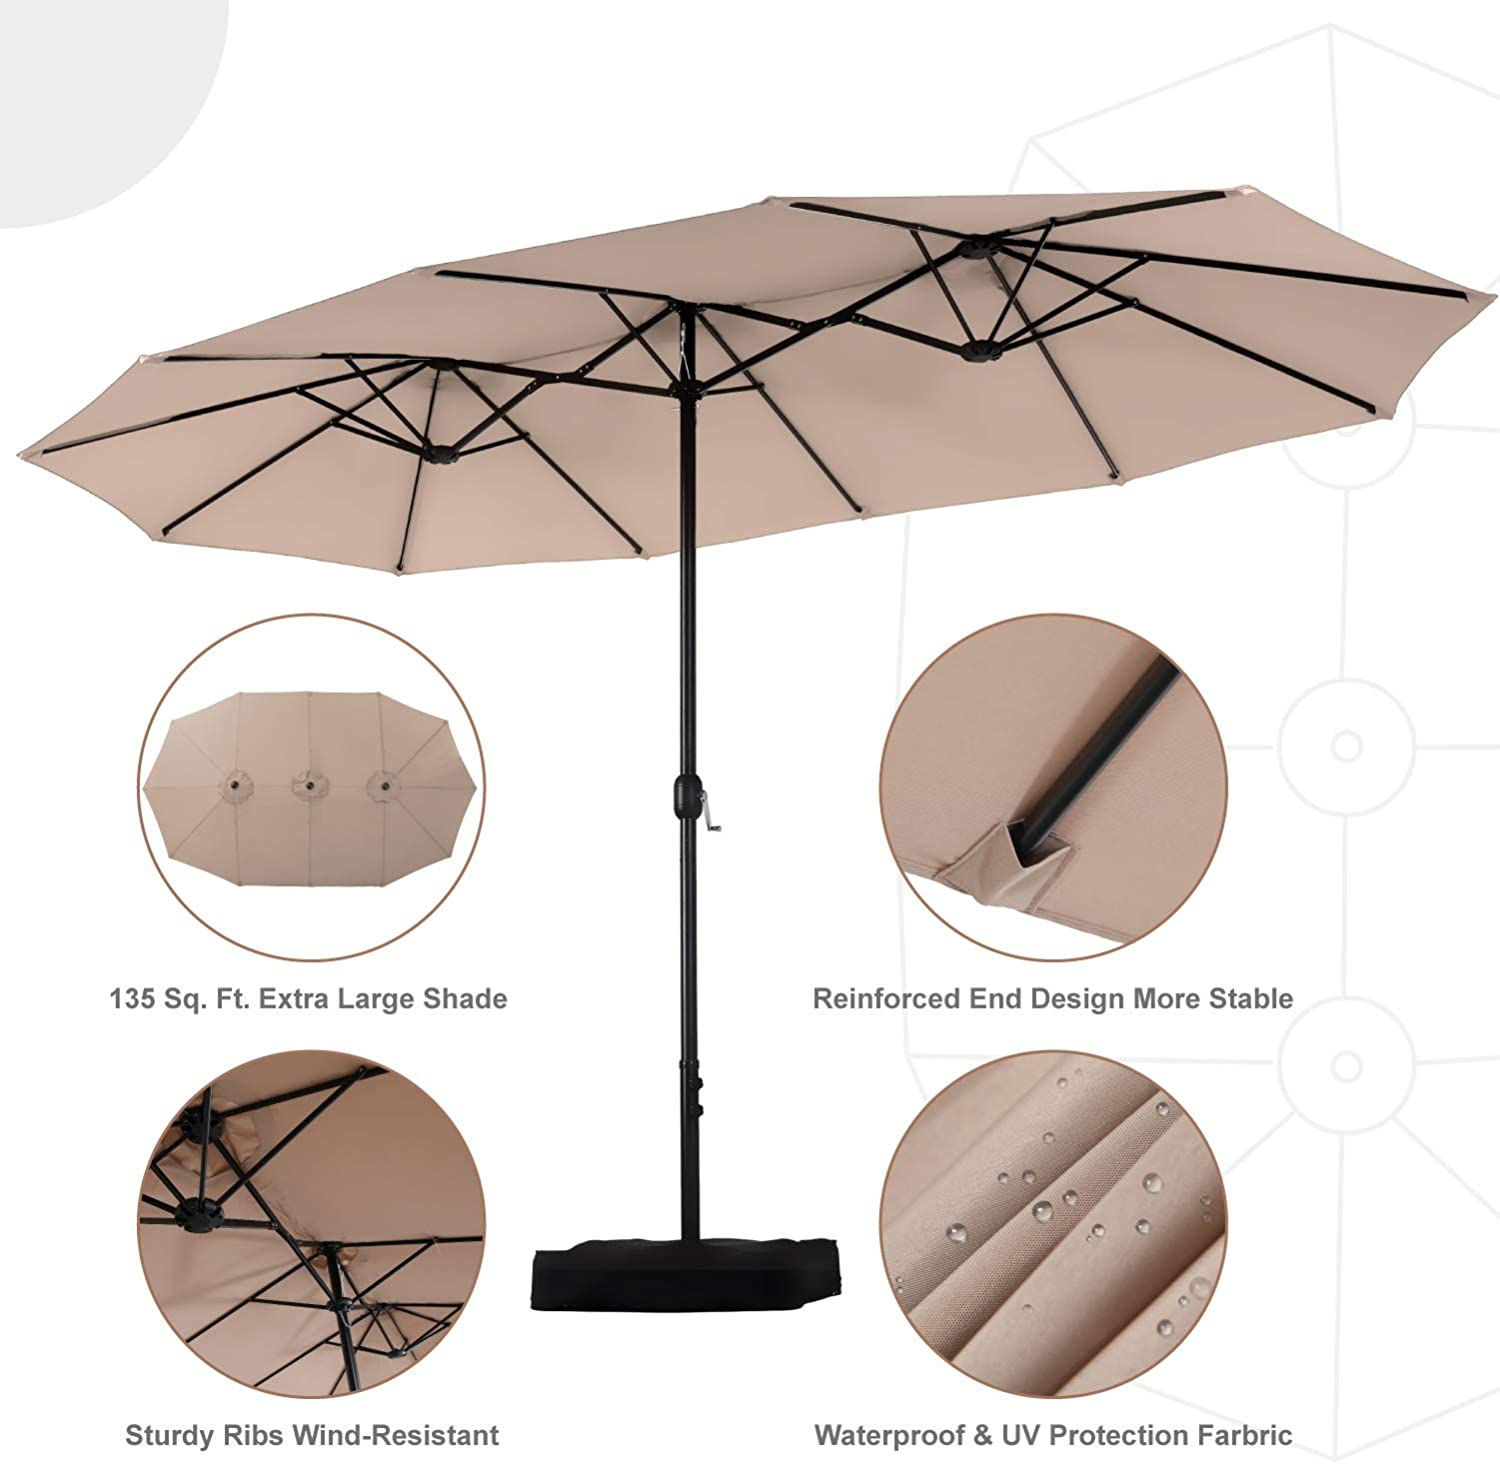 Oversized Outdoor Patio Umbrella Double Sided, Extra Large Patio Shade Coverage with Sturdy Crank Handle | Base Included